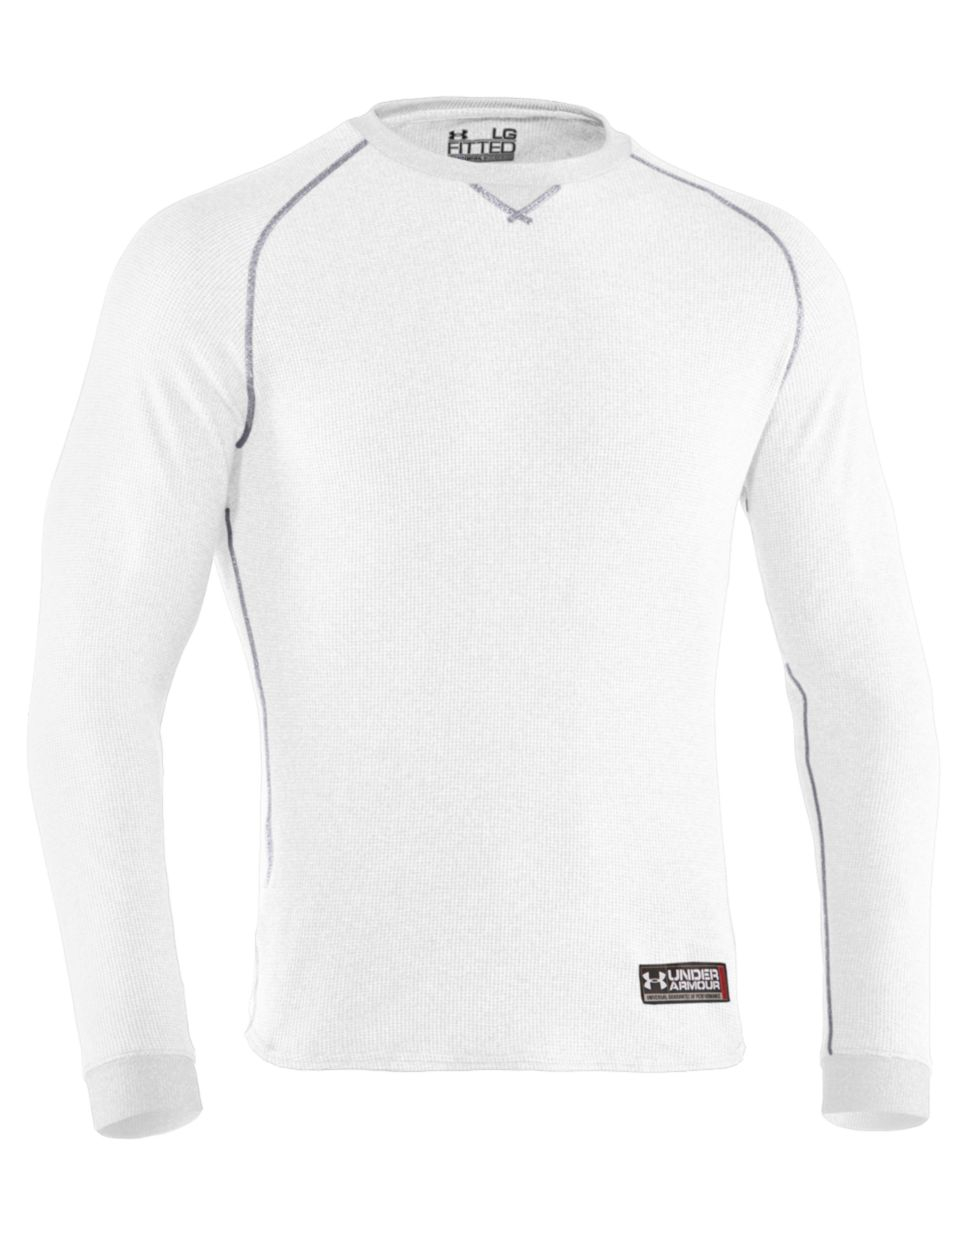 07ba892a8e5 Under Armour Thermal 20 Crew Shirt in White for Men - Lyst